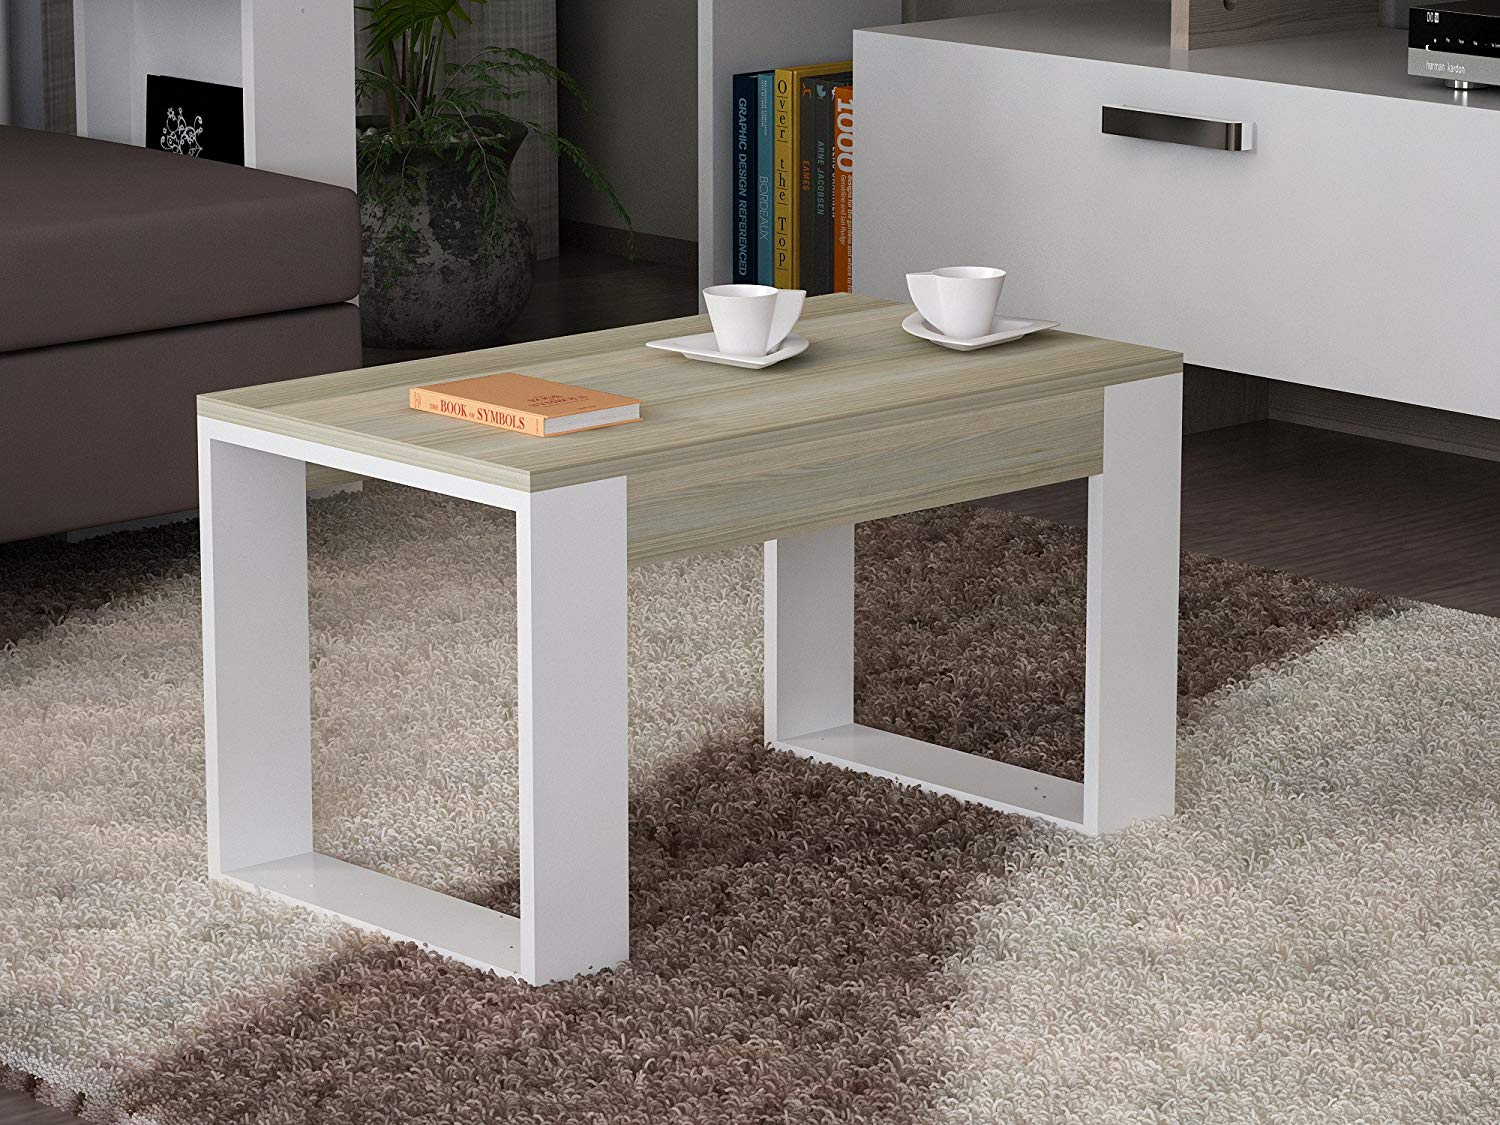 LaModaHome Modern Style Coffee Table - White-Brown Coffee Table Wooden Resistant Table - Cocktail Table with Storage - Best Choice For Quality - For Home, Office, Living Room and More